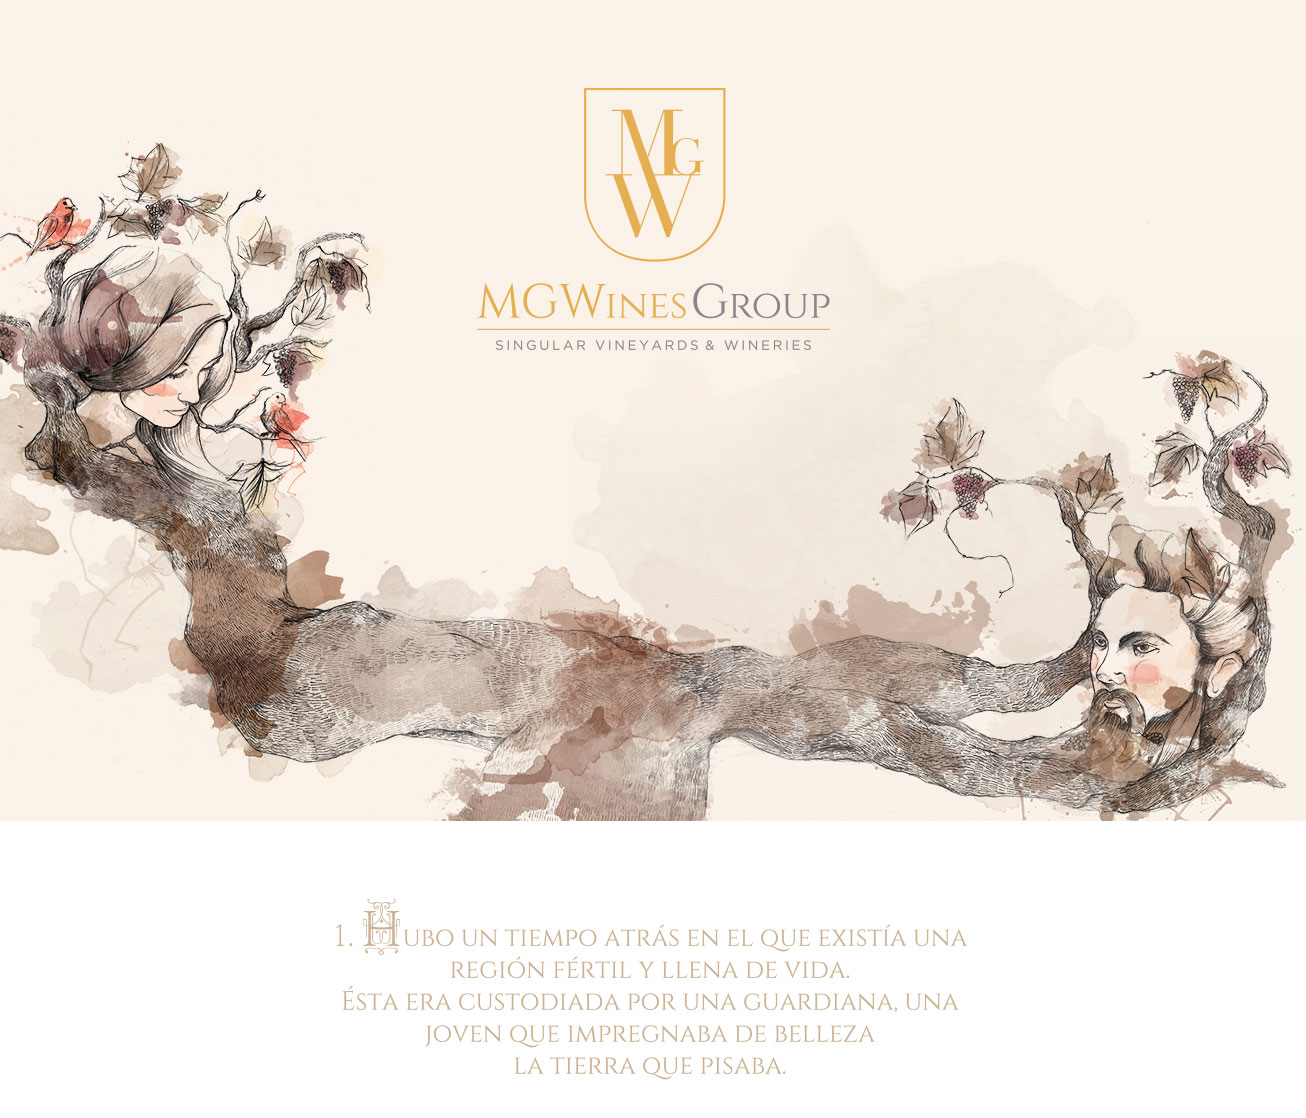 mgwines-baco-packaging-01